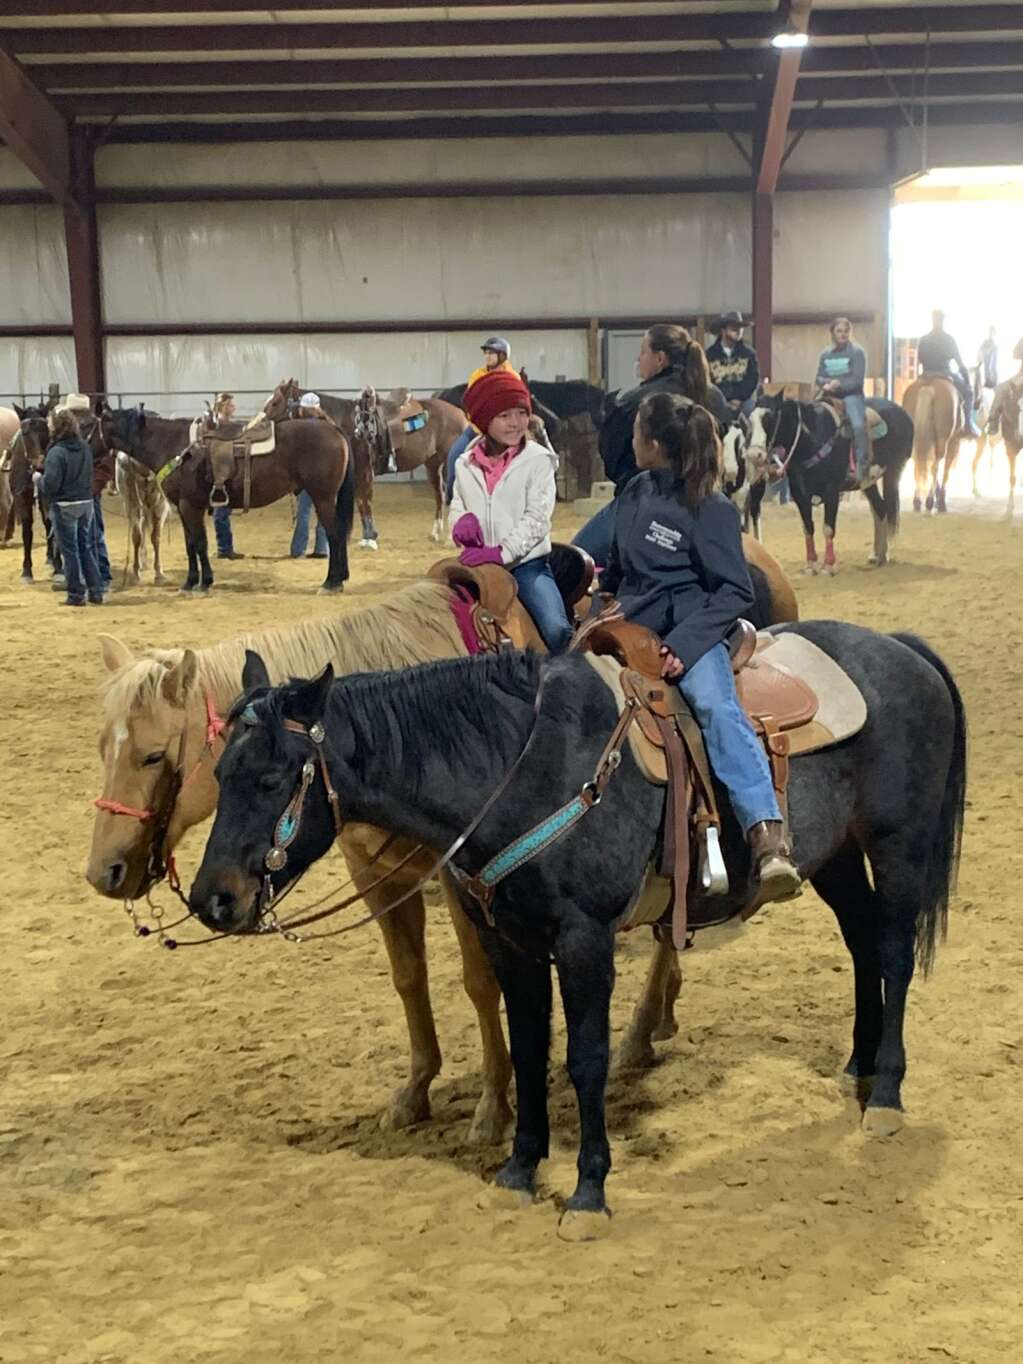 Little cowgirls chat during an equine event at the Kluz facility.